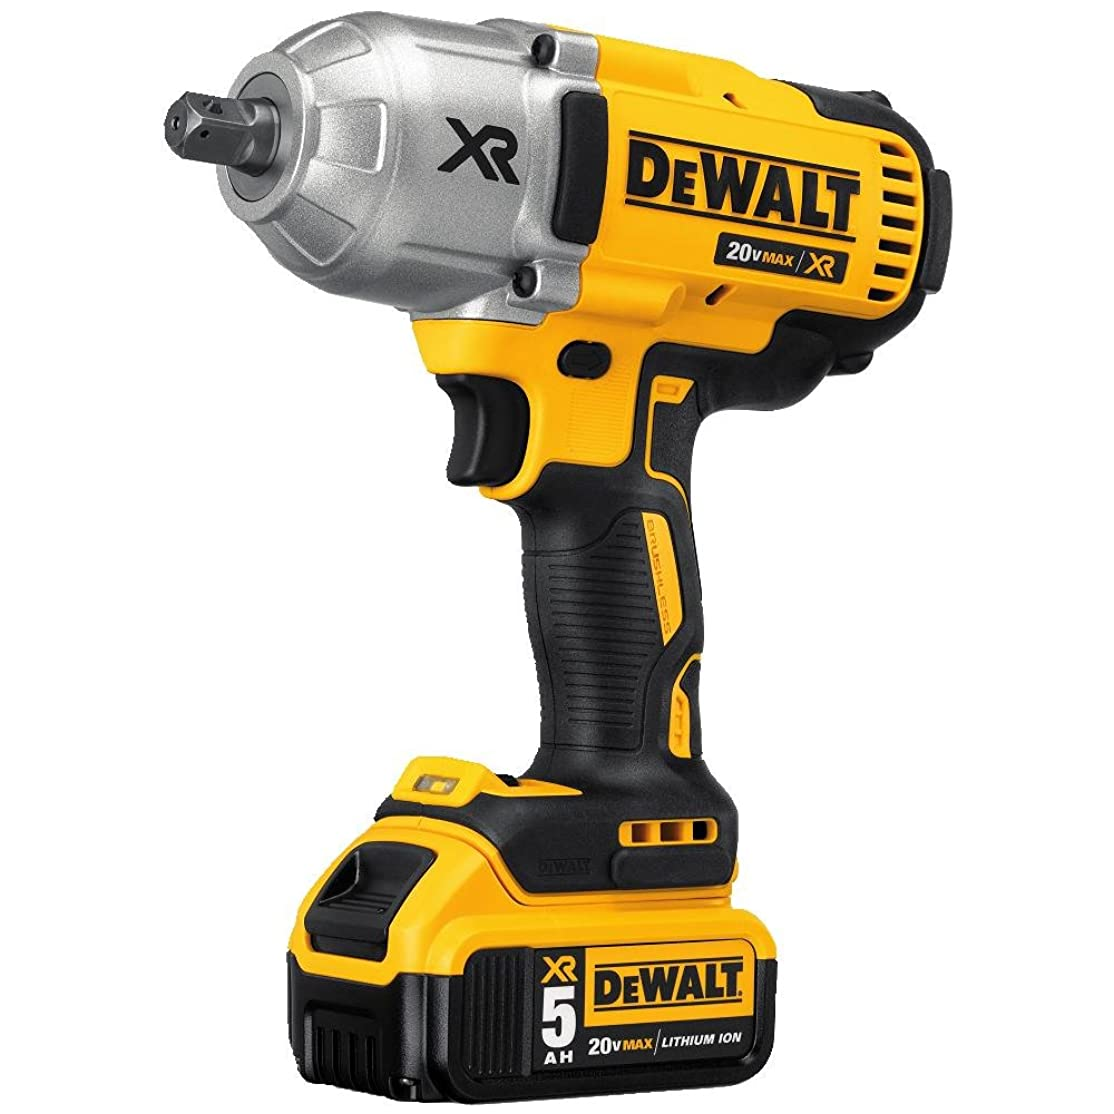 DEWALT 20V MAX XR Cordless Impact Wrench Kit with Detent Anvil, 1/2-Inch (DCF899P2) nlkuyq0059